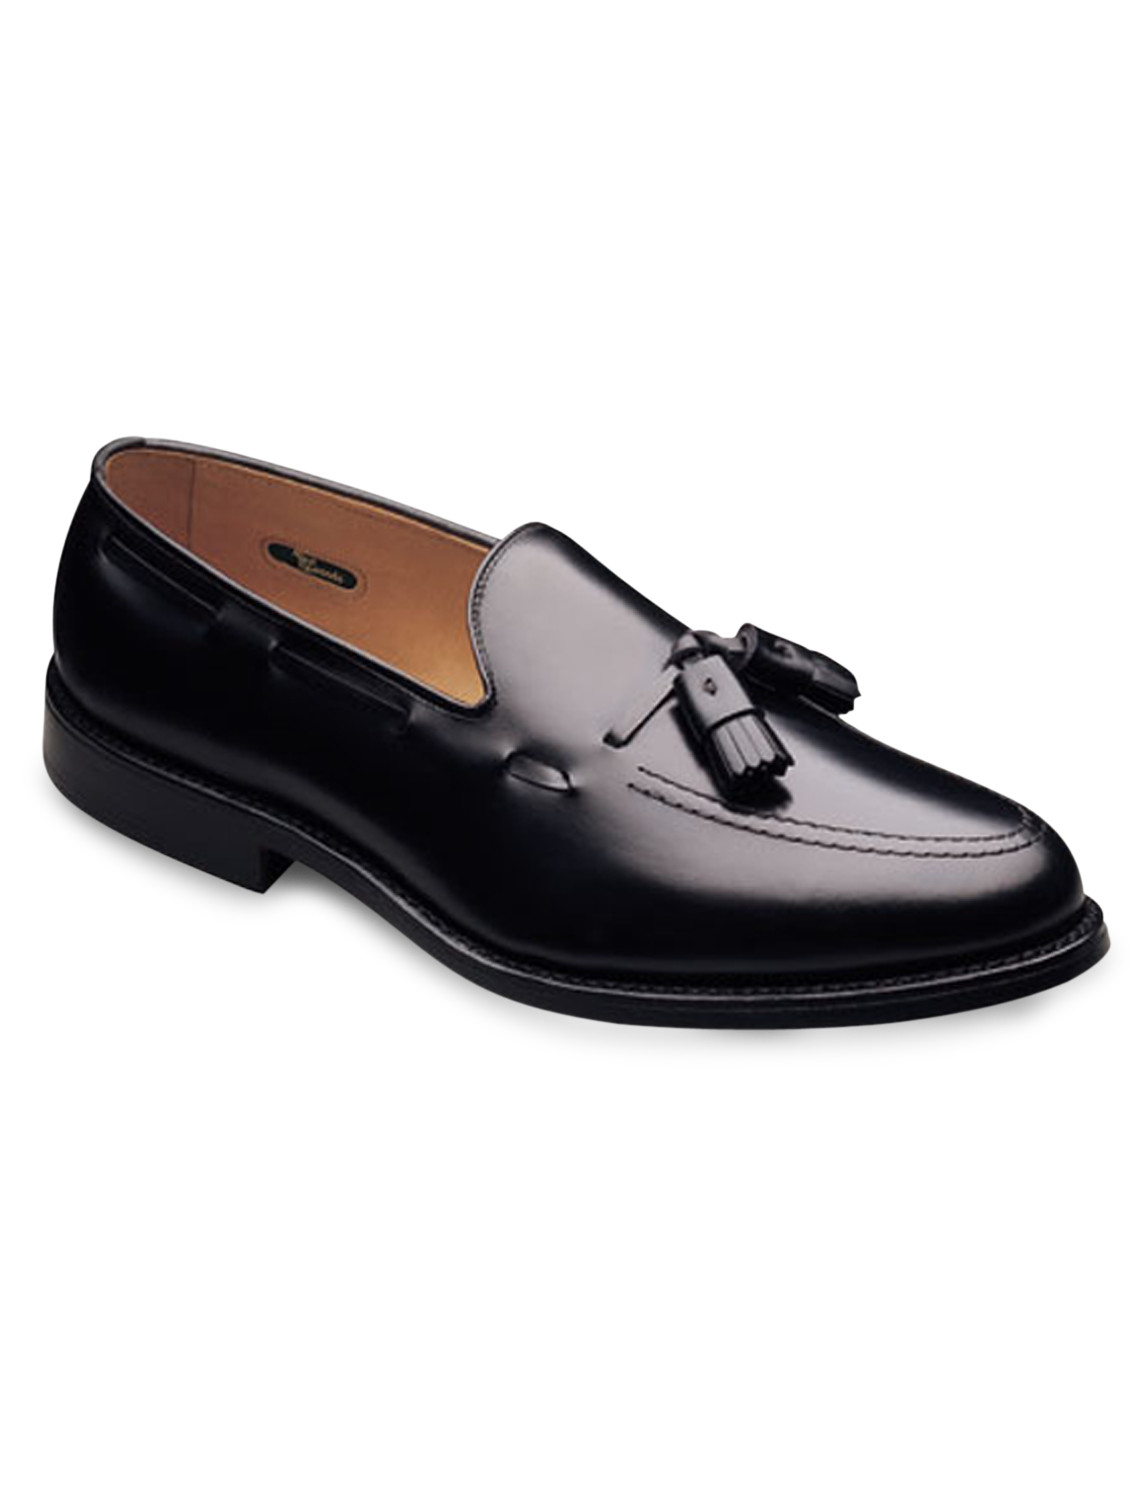 Set your own pace with this elegant slip-on shoe. Tassels and side lacing add classic details. Full leather lining and sole gives added comfort and support. Made in USA. Ships directly from manufacturer. See below for delivery times.